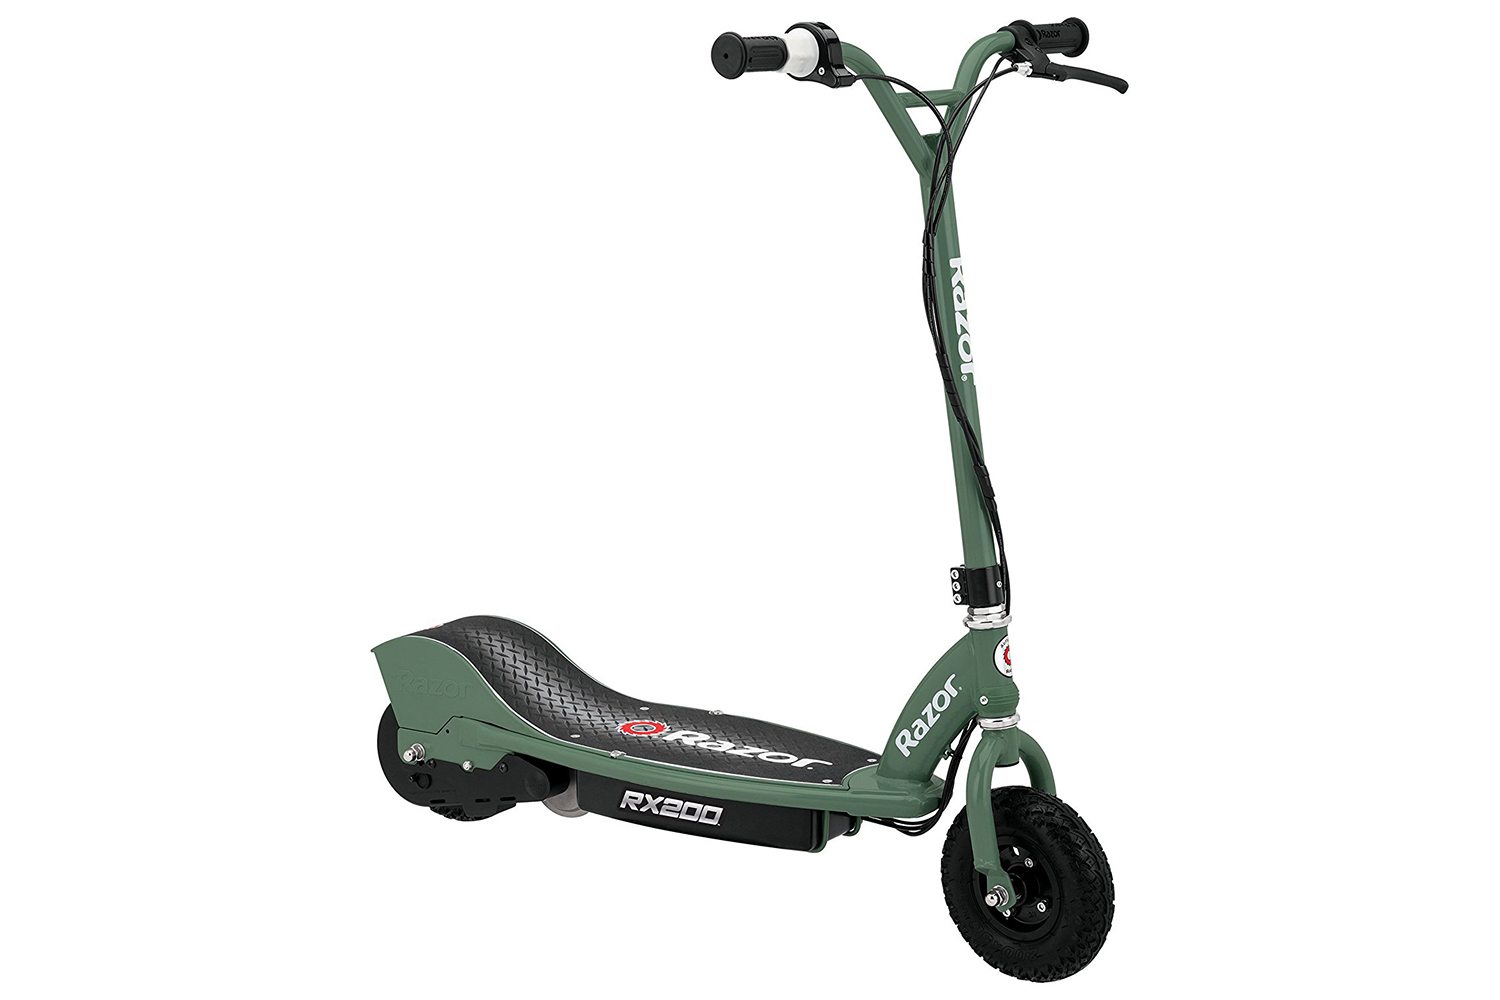 razor rx200 off road electric scooter gearscoot. Black Bedroom Furniture Sets. Home Design Ideas